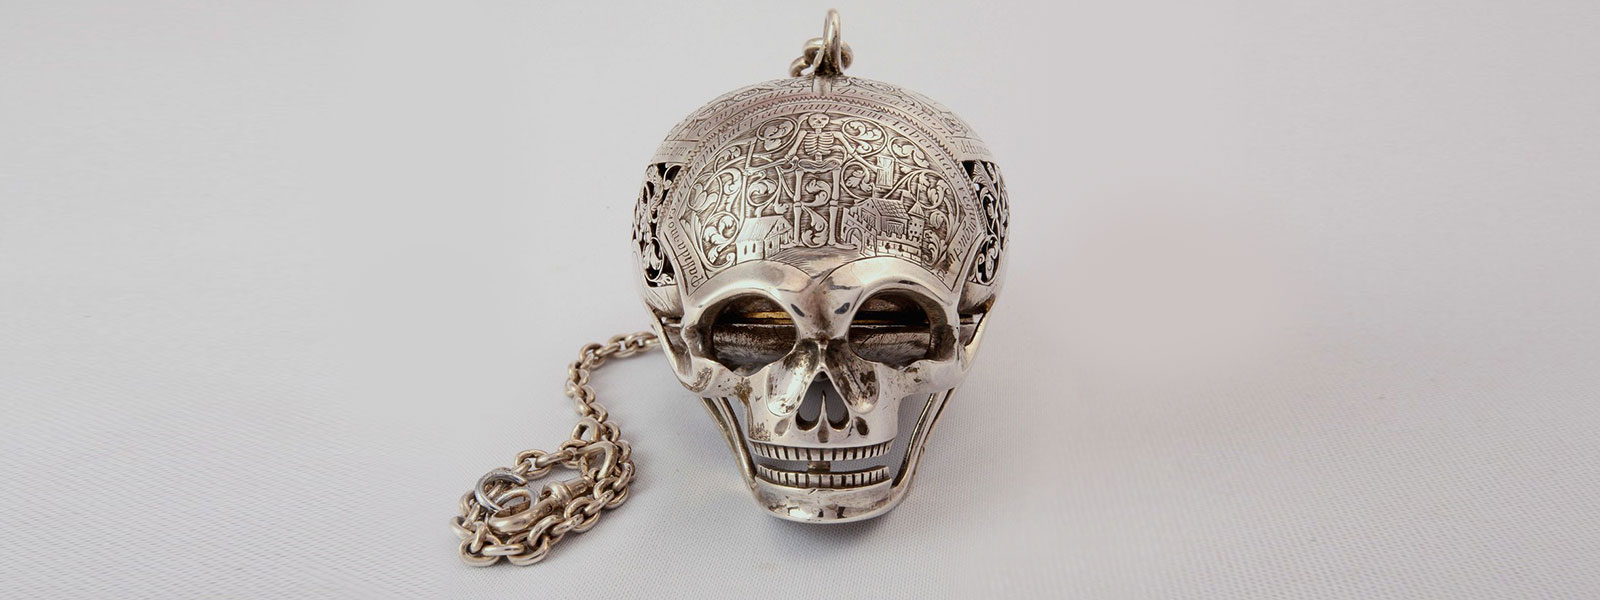 Mary Queen of Scots Memento Mori Death's Clock Pocket Watch